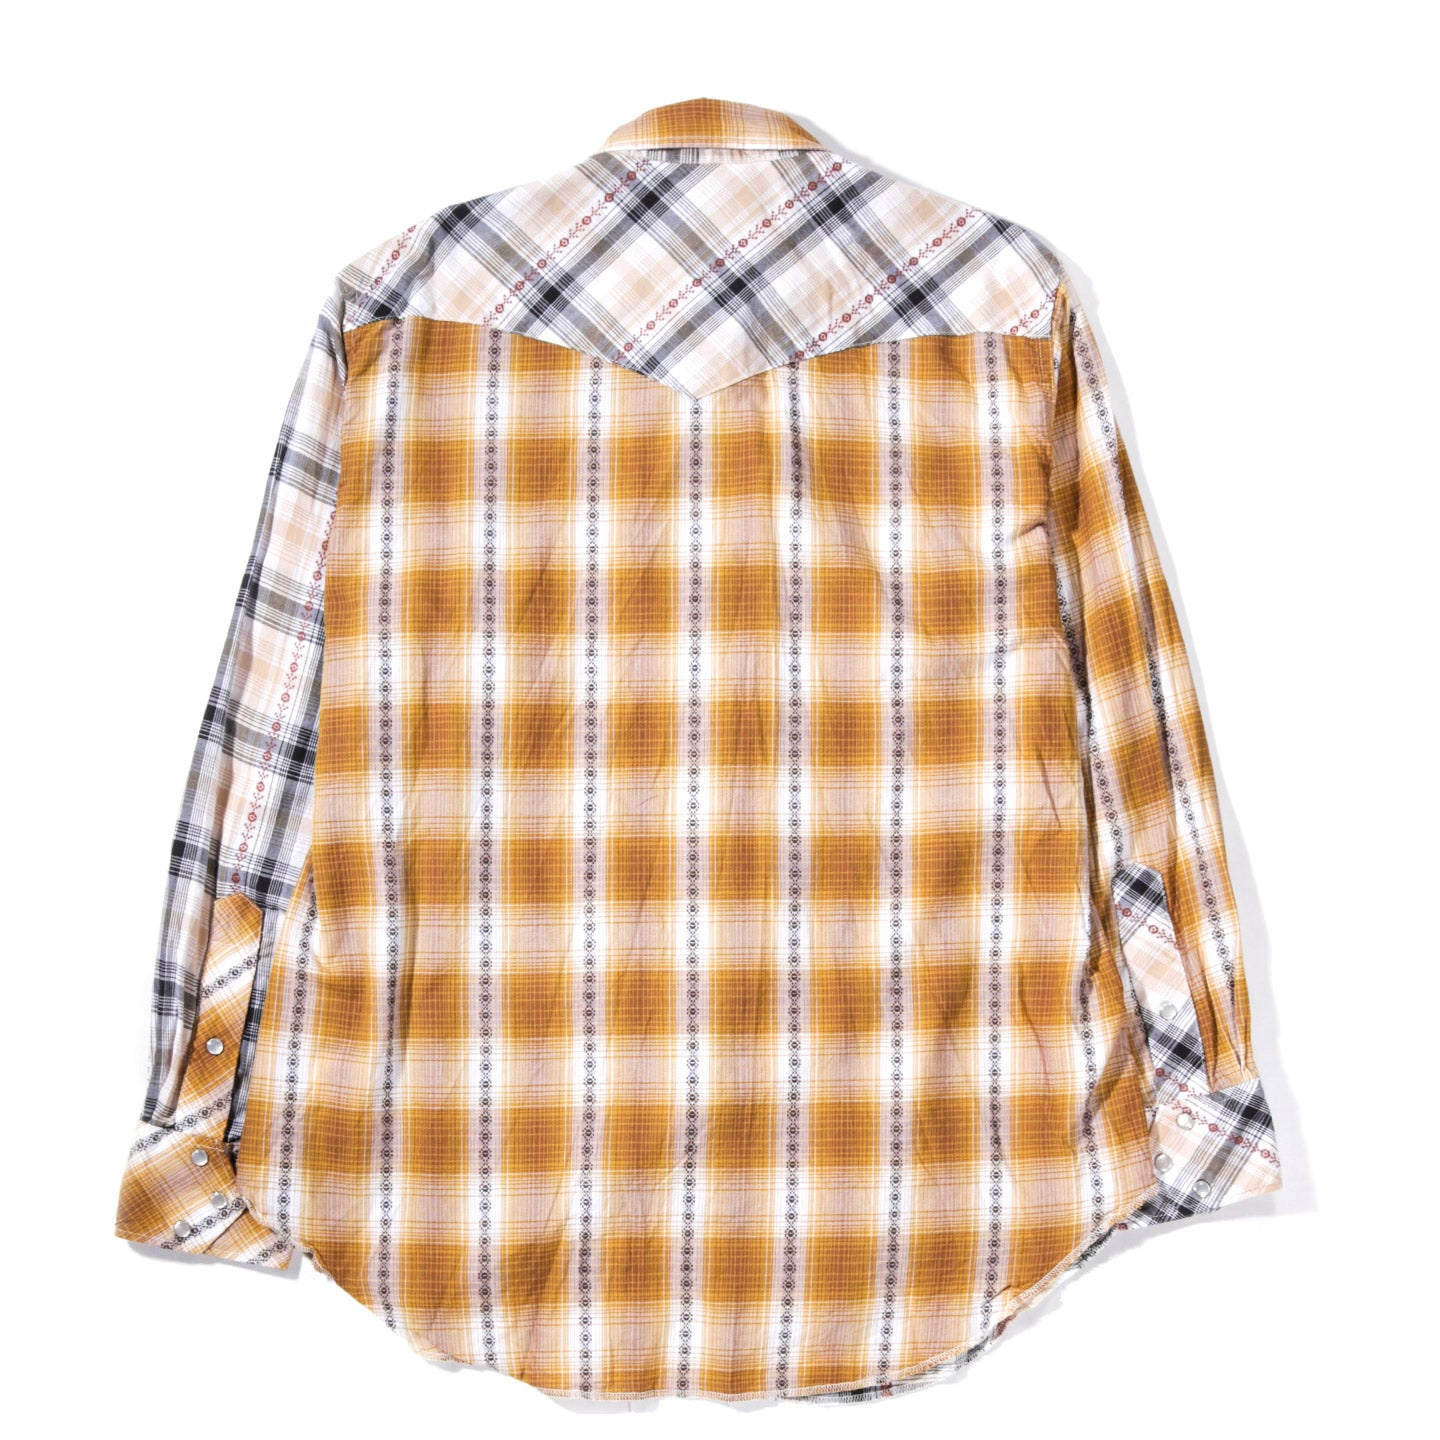 ENGINEERED GARMENTS WESTERN SHIRT TAN DOBBY SHADOW PLAID